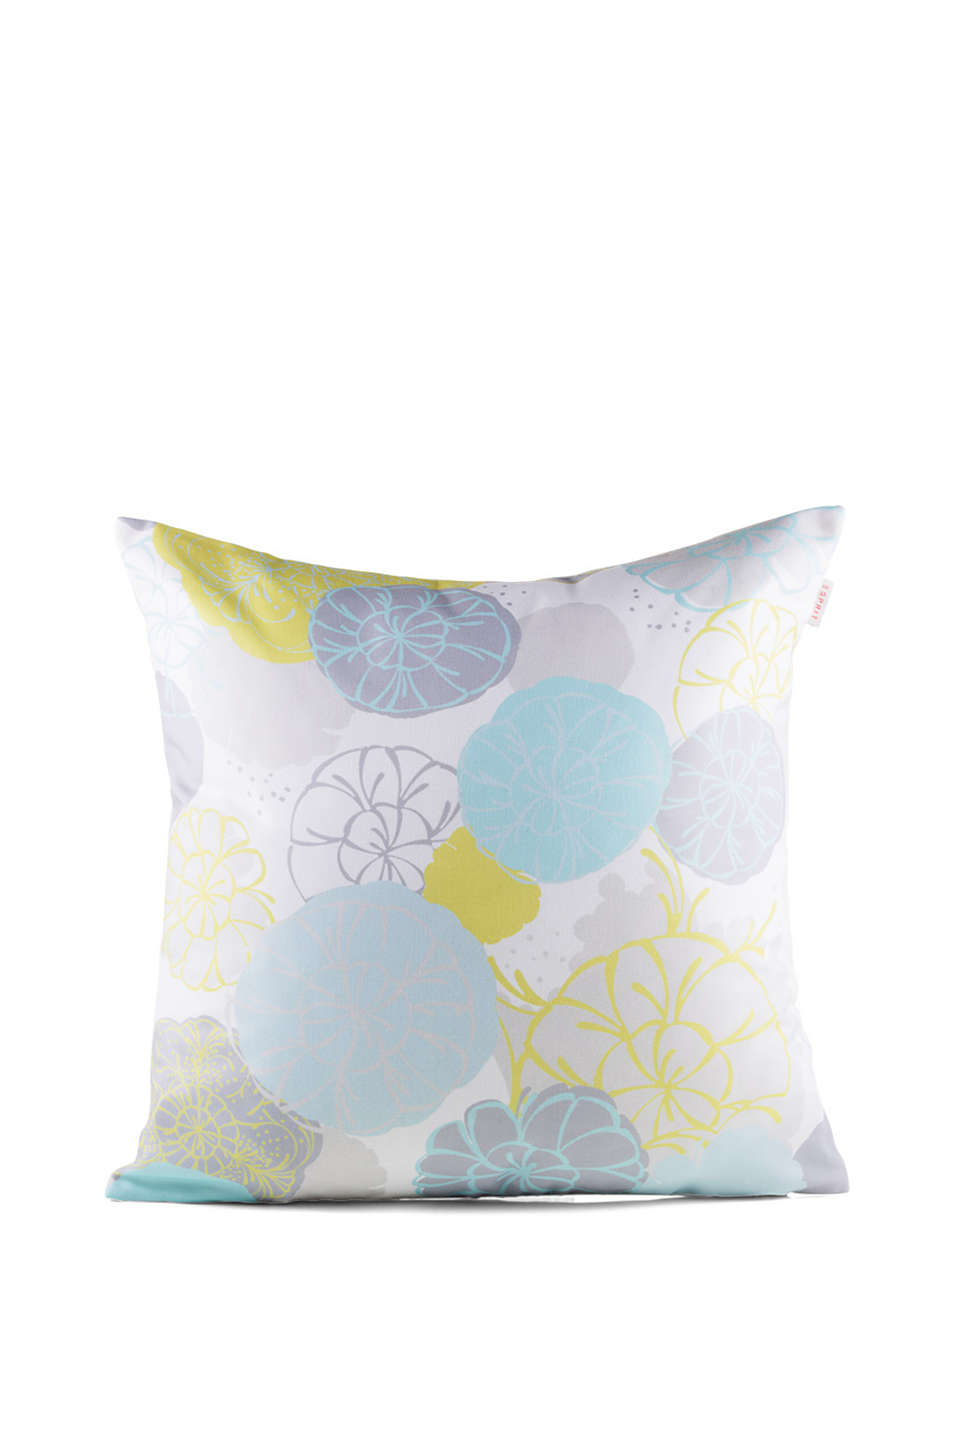 Blended cotton cushion cover with a floral pattern (45 x 45 cm)